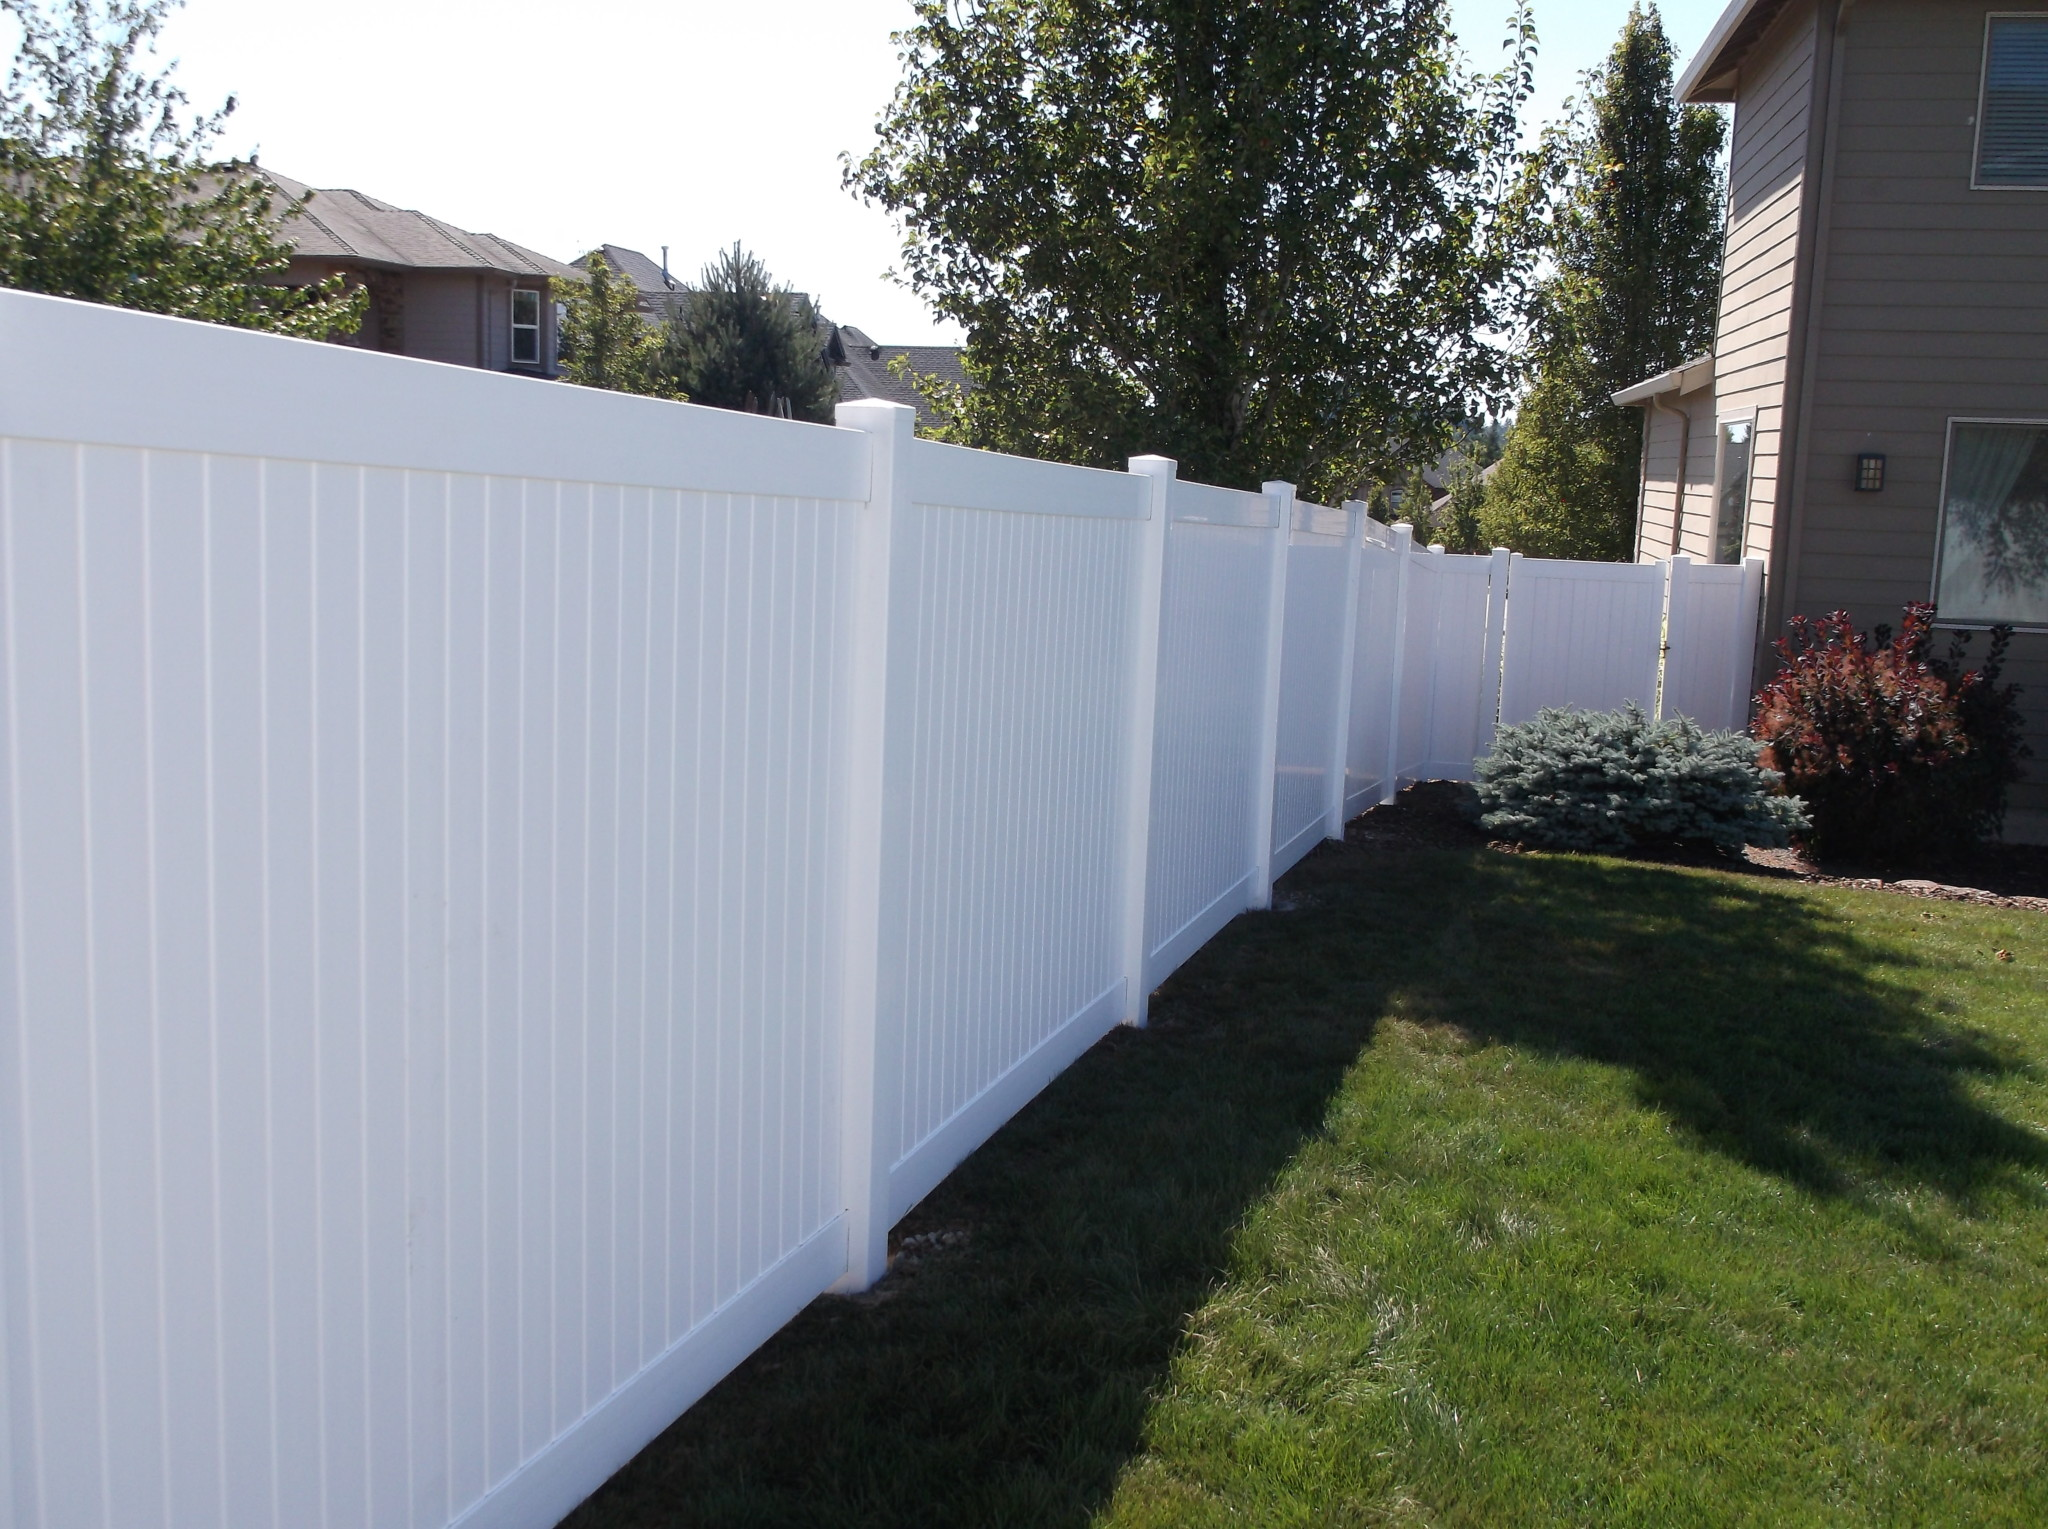 White Vinyl Fence maximize your privacy on your corner lot. Contact Vancouver Washington's Best Fence Builders. The Fenceman Fence Company installs wood, vinyl, chain link and ornamental iron fences. We also offer materials for the do it yourselfer.